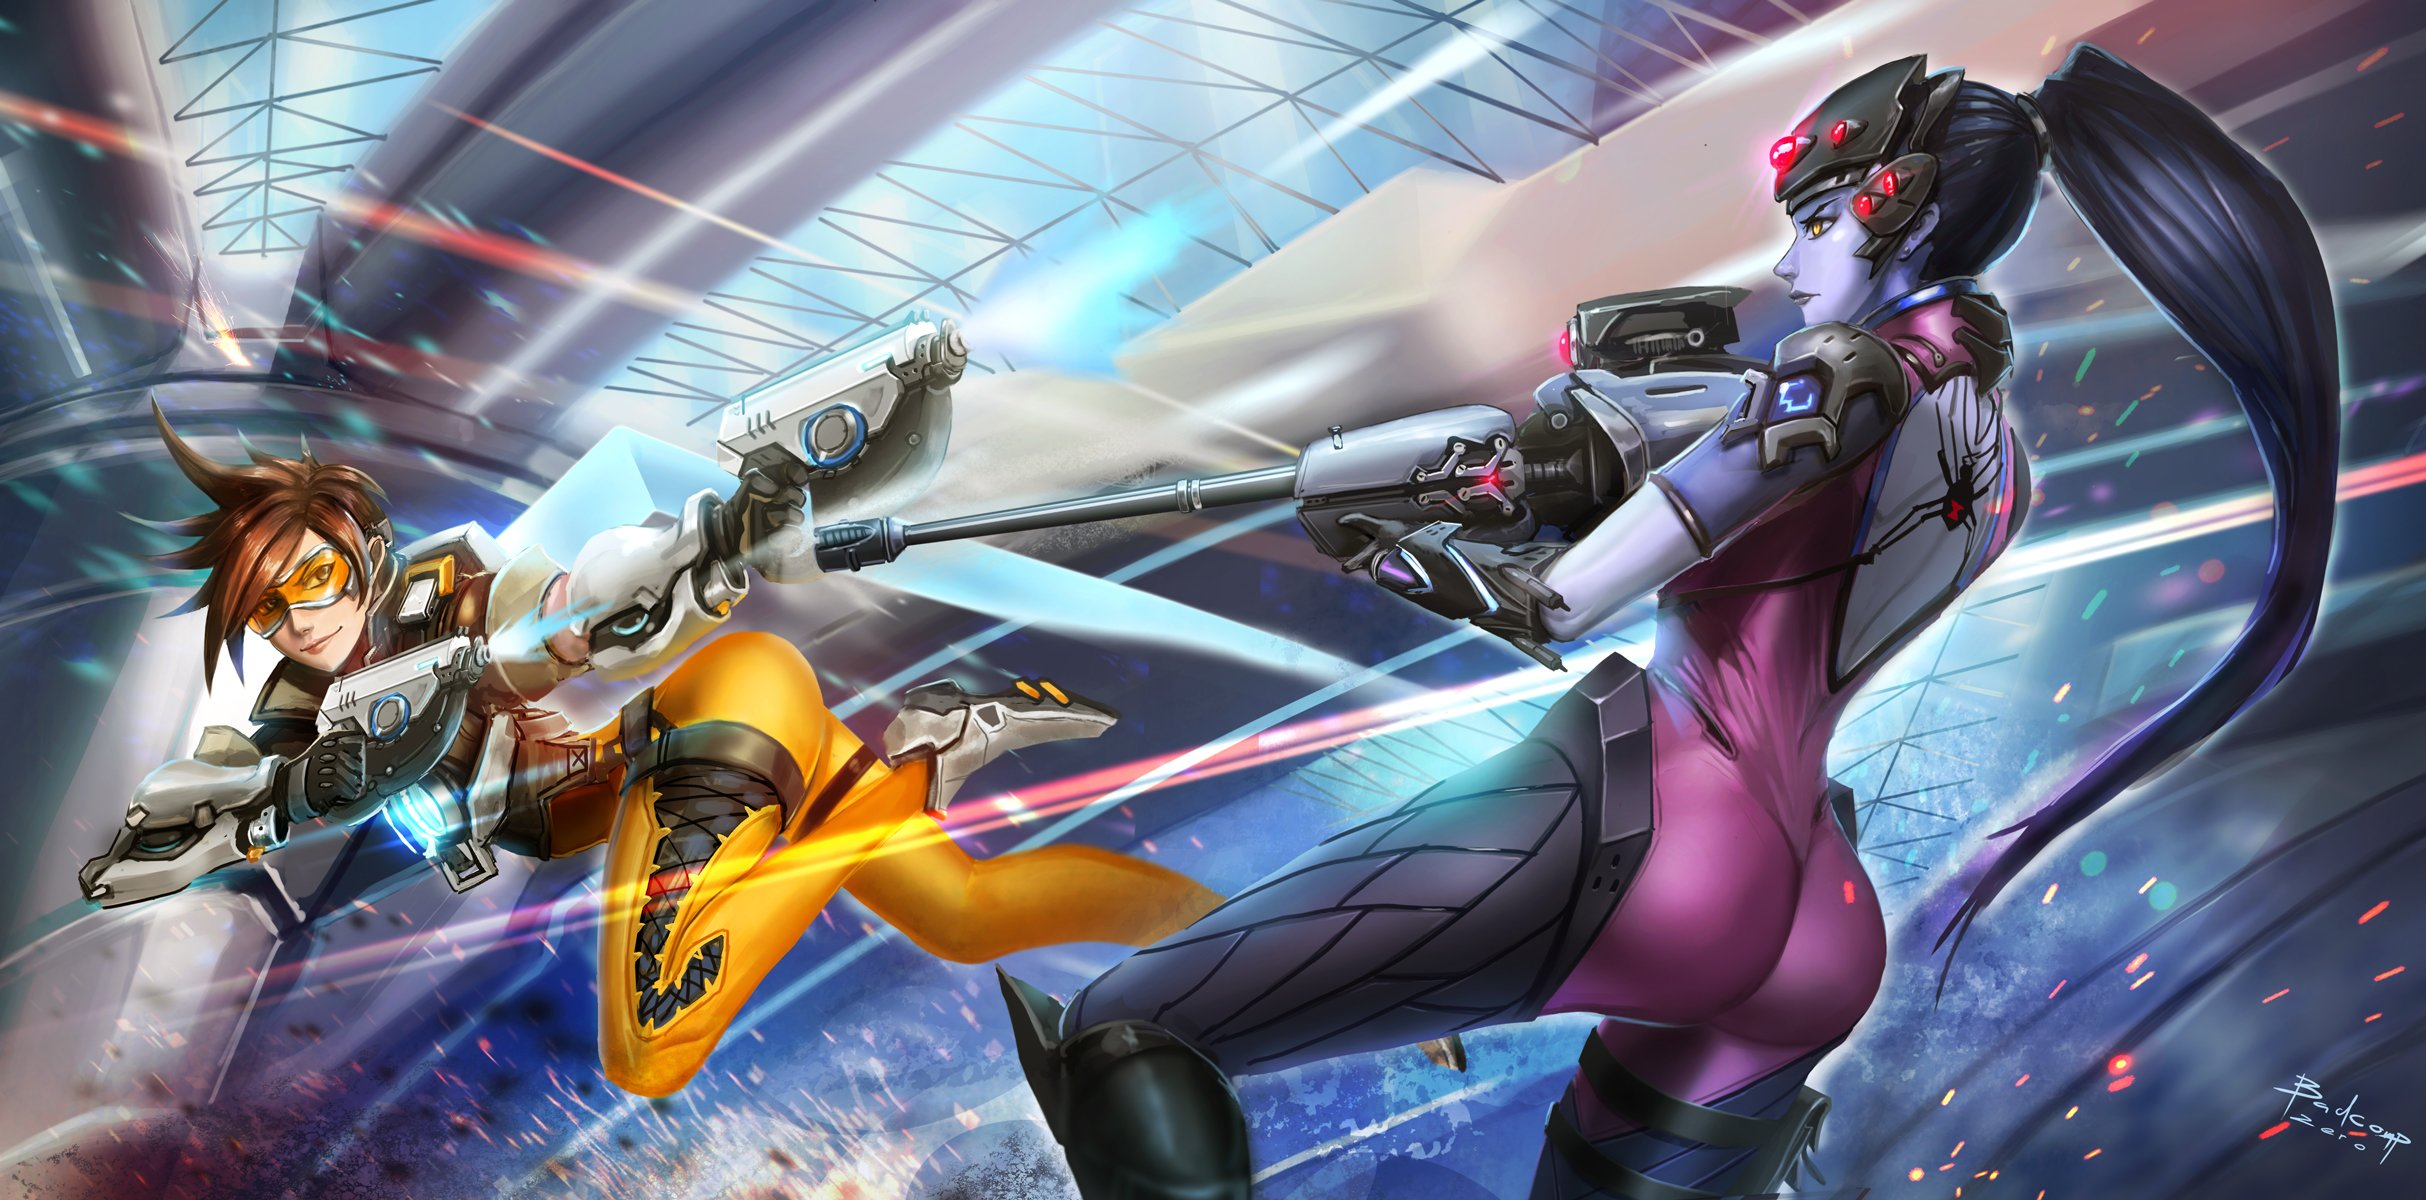 OVERWATCH shooter action fighting sci fi mecha Strategy wallpaper 2426x1200